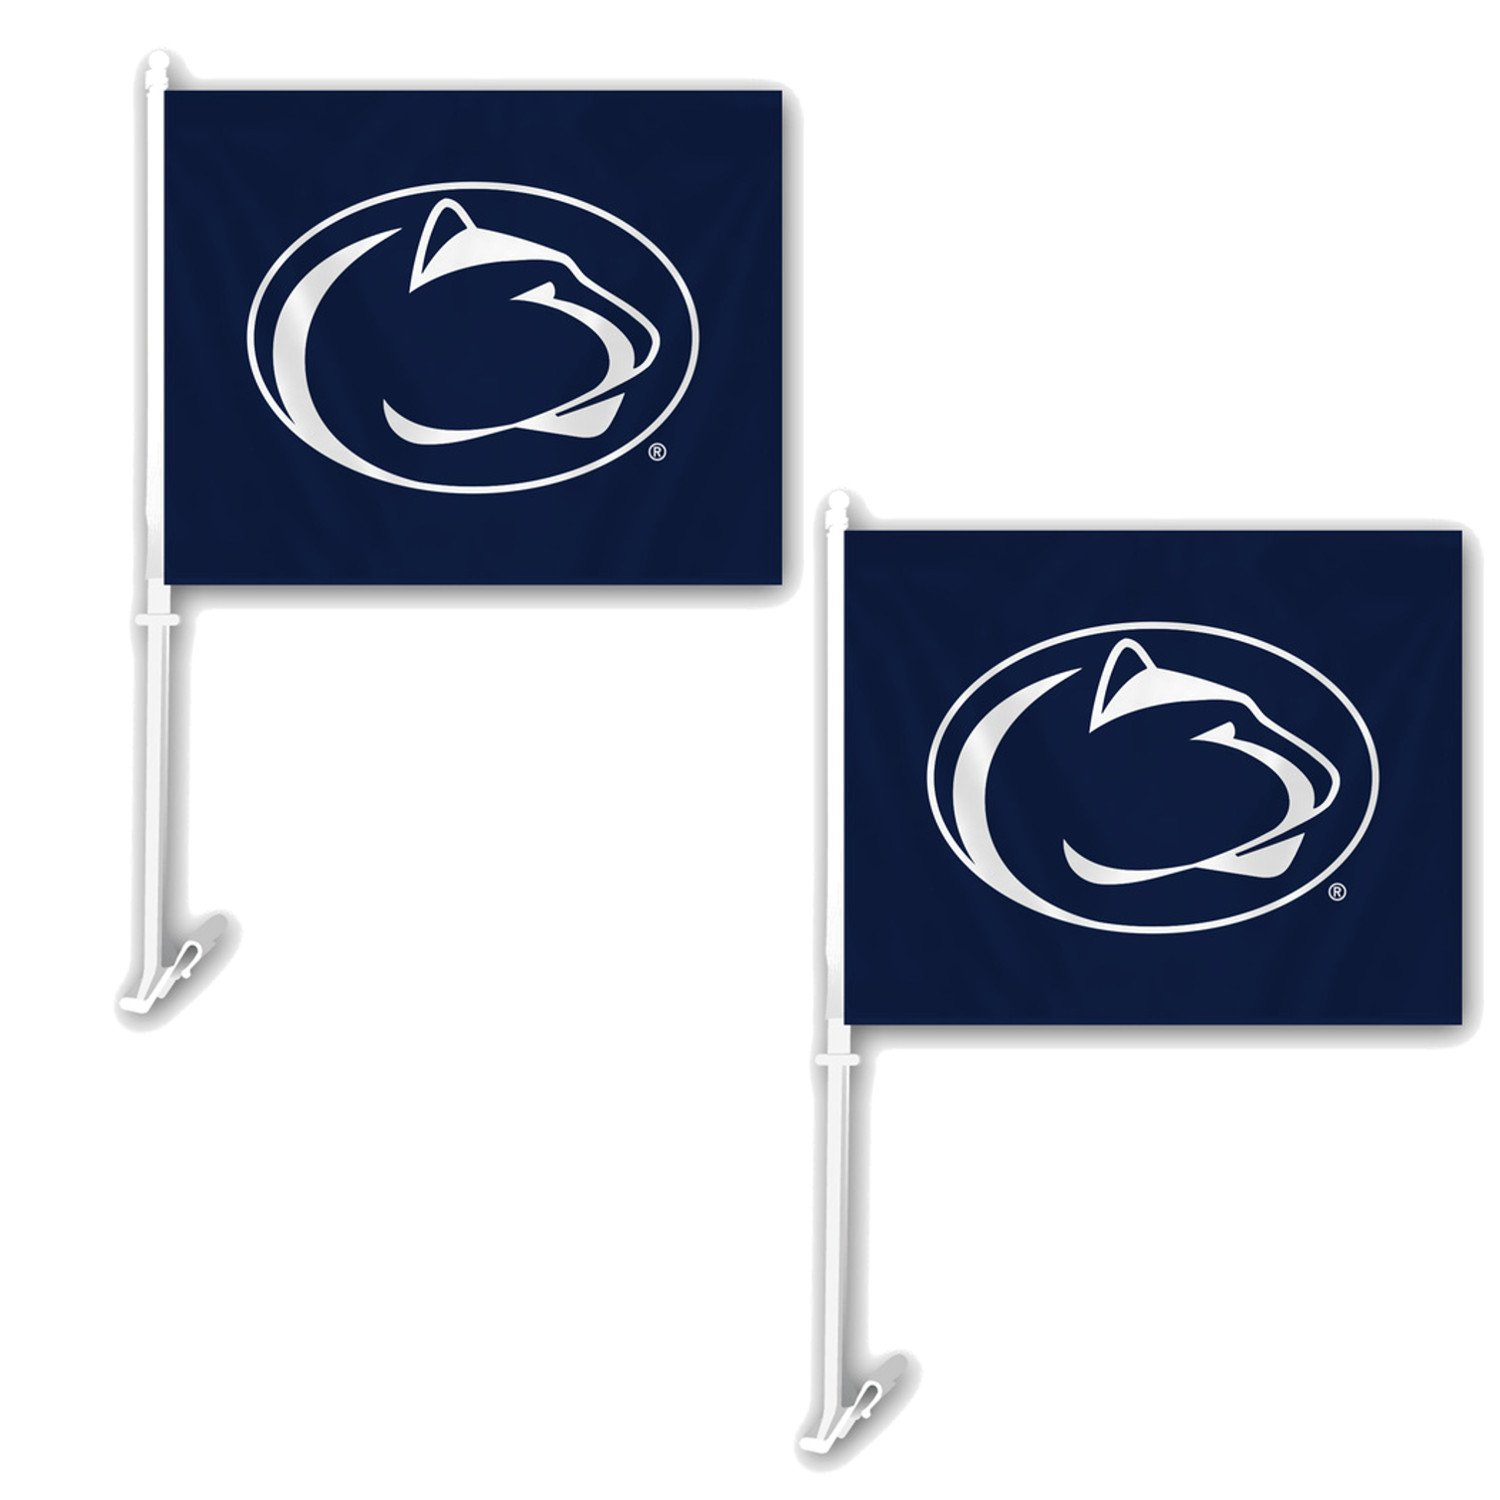 NCAA Official National Collegiate Athletic Association Fan Shop Authentic 2-pack Car Flag. Show School Pride While Driving